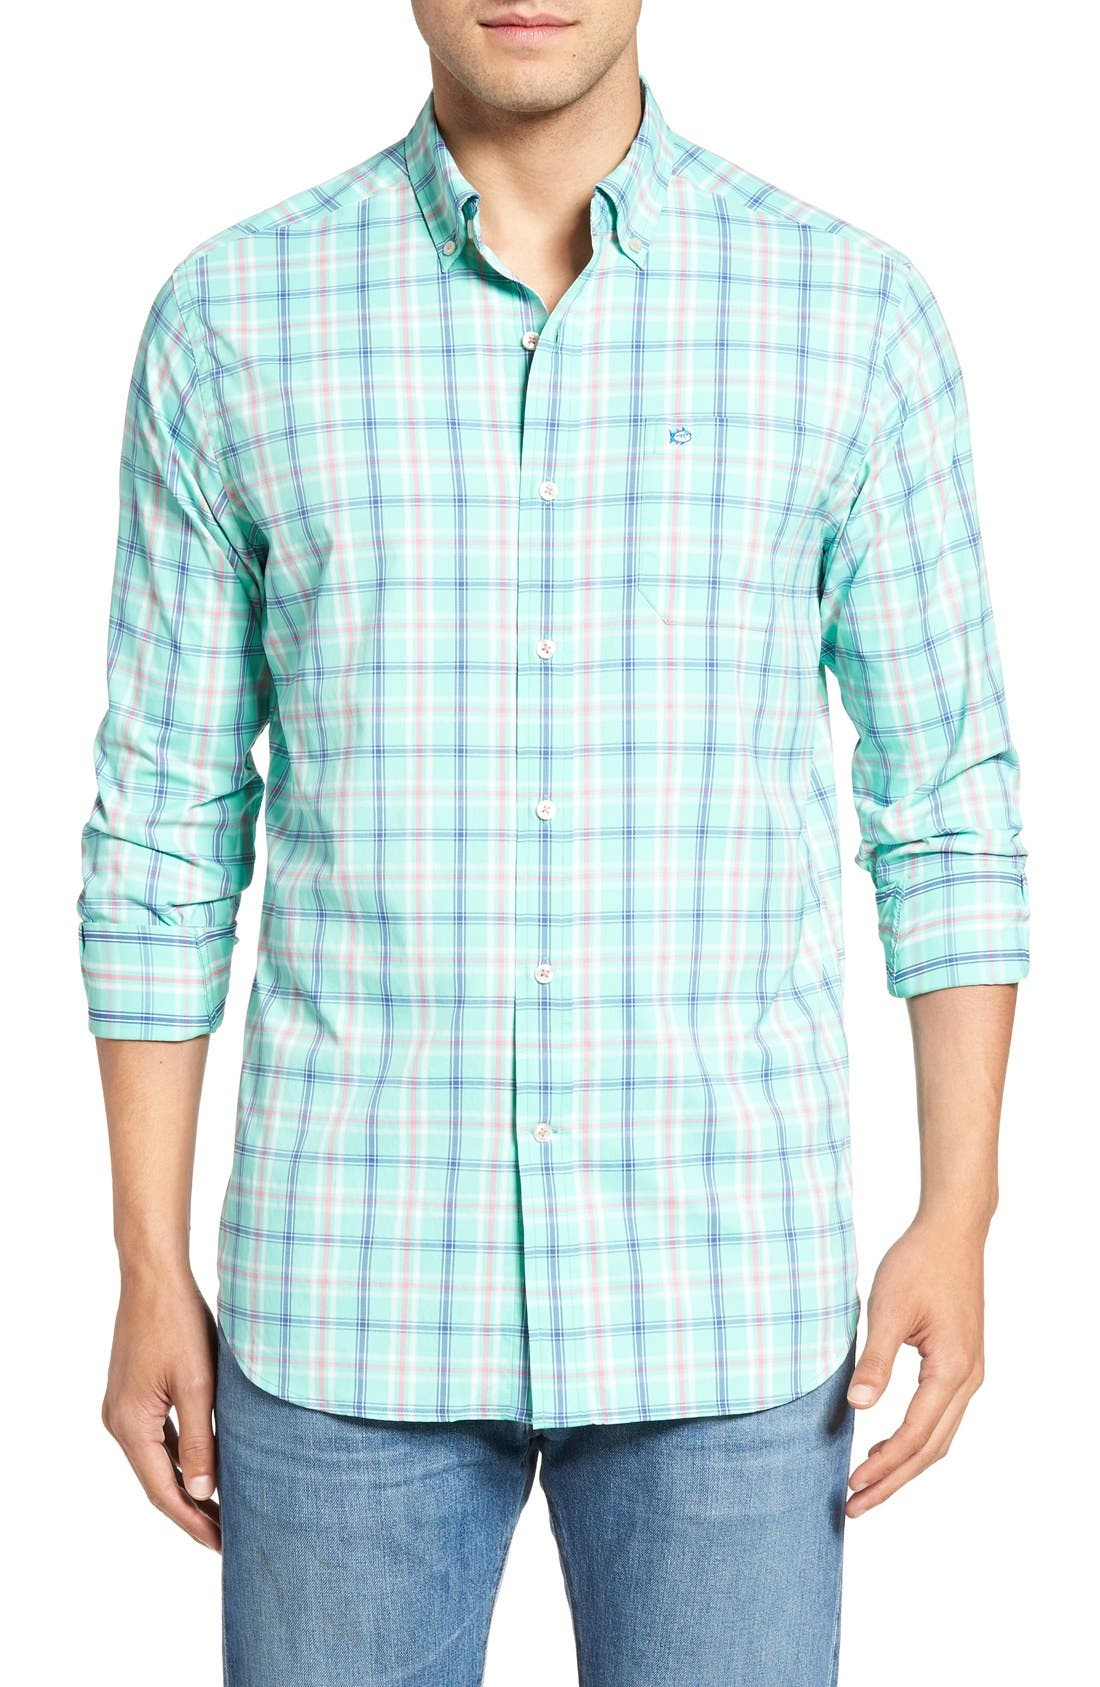 SOUTHERN TIDE Barrier Reef Classic Fit Plaid Sport